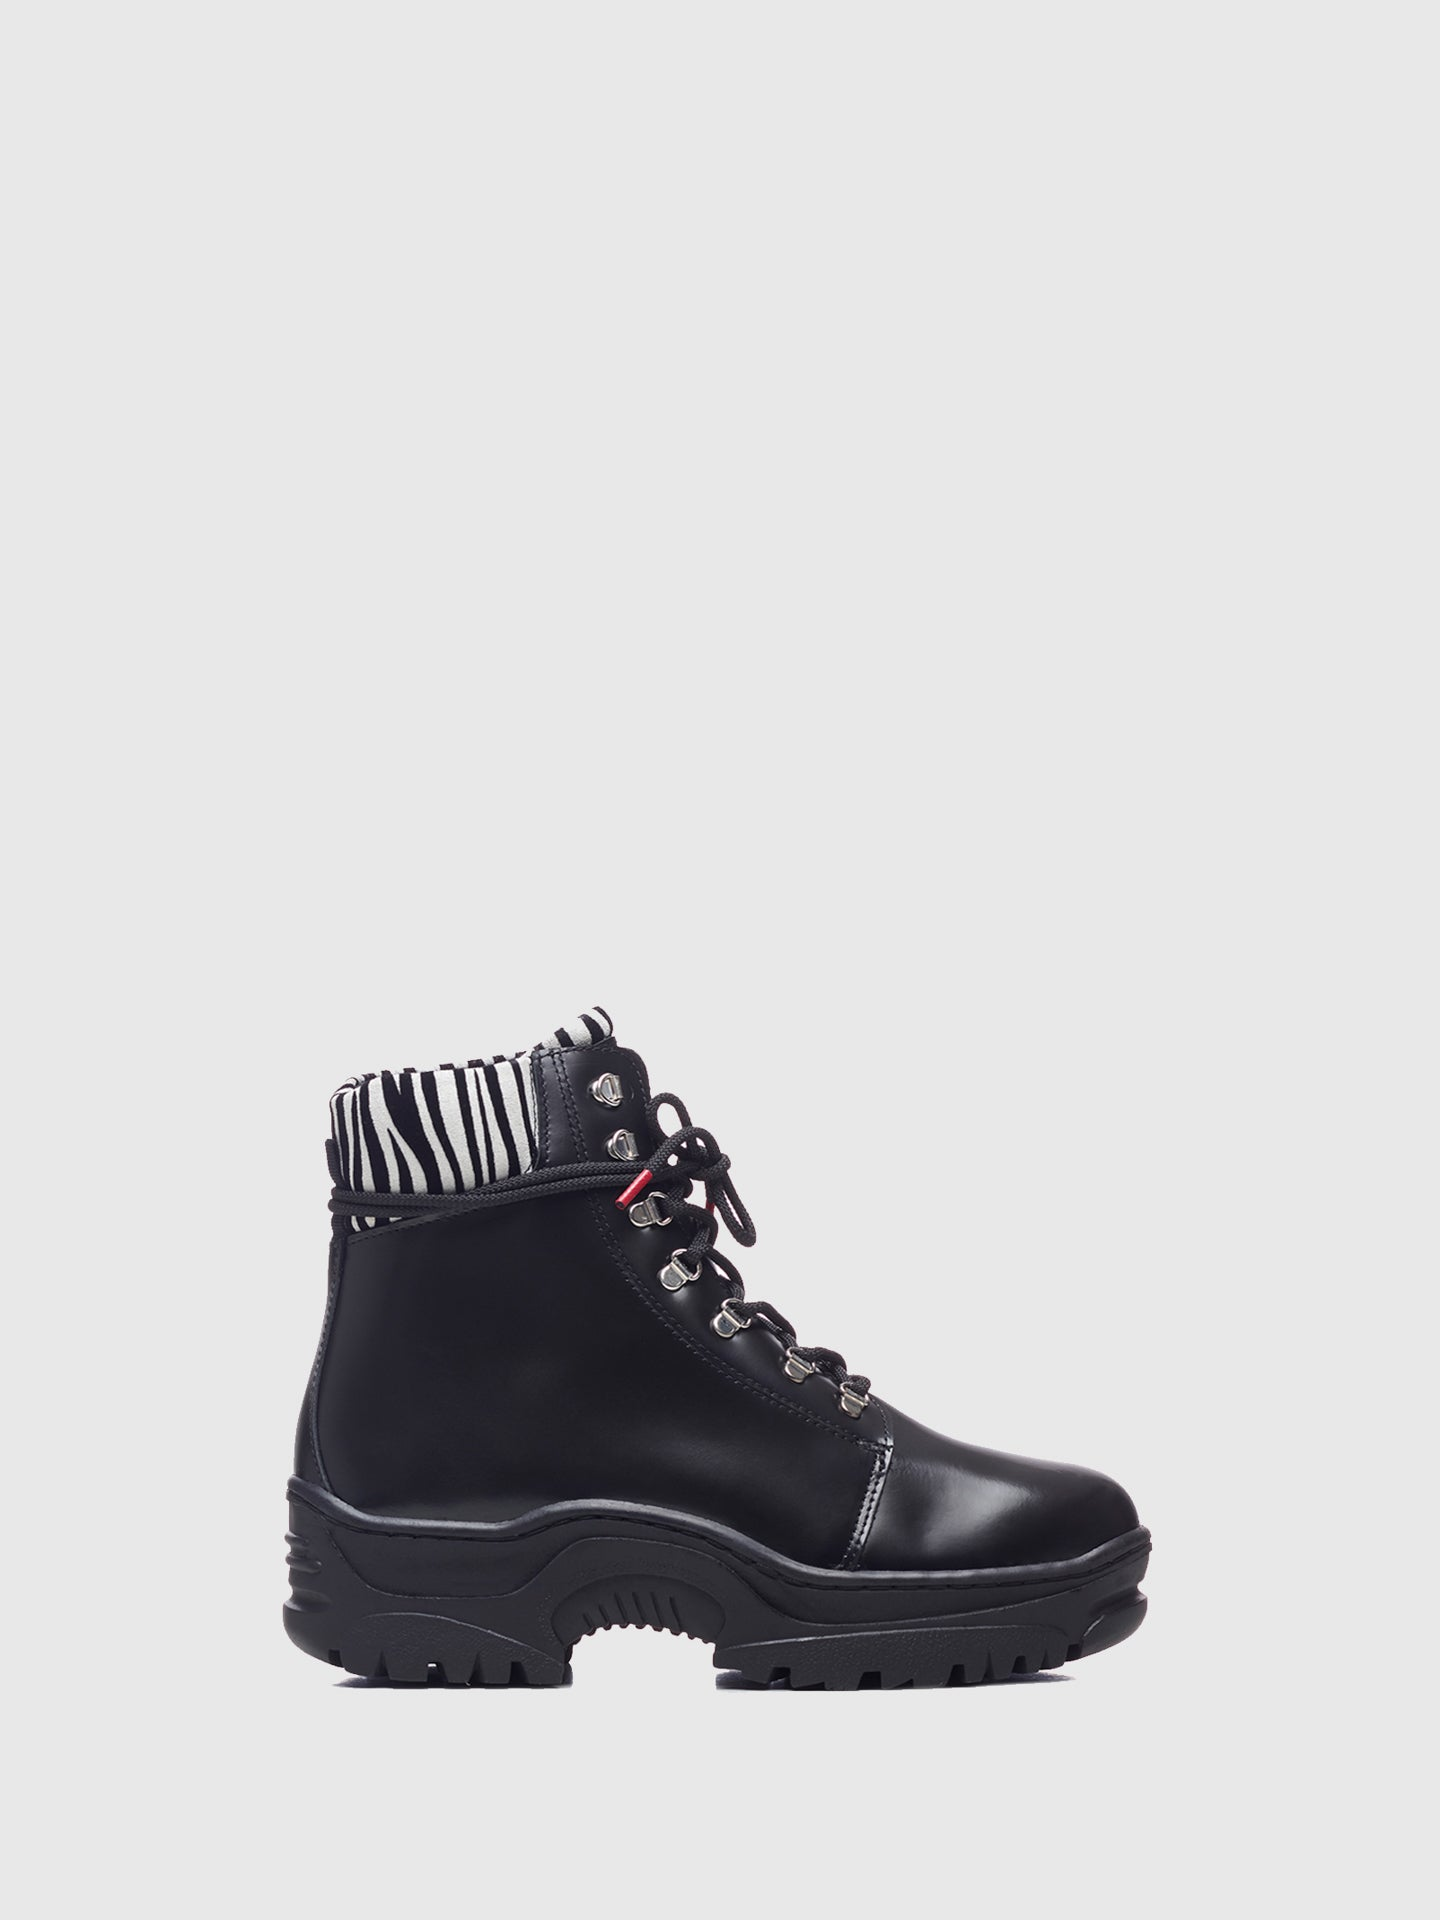 Nobrand Black Lace-up Boots